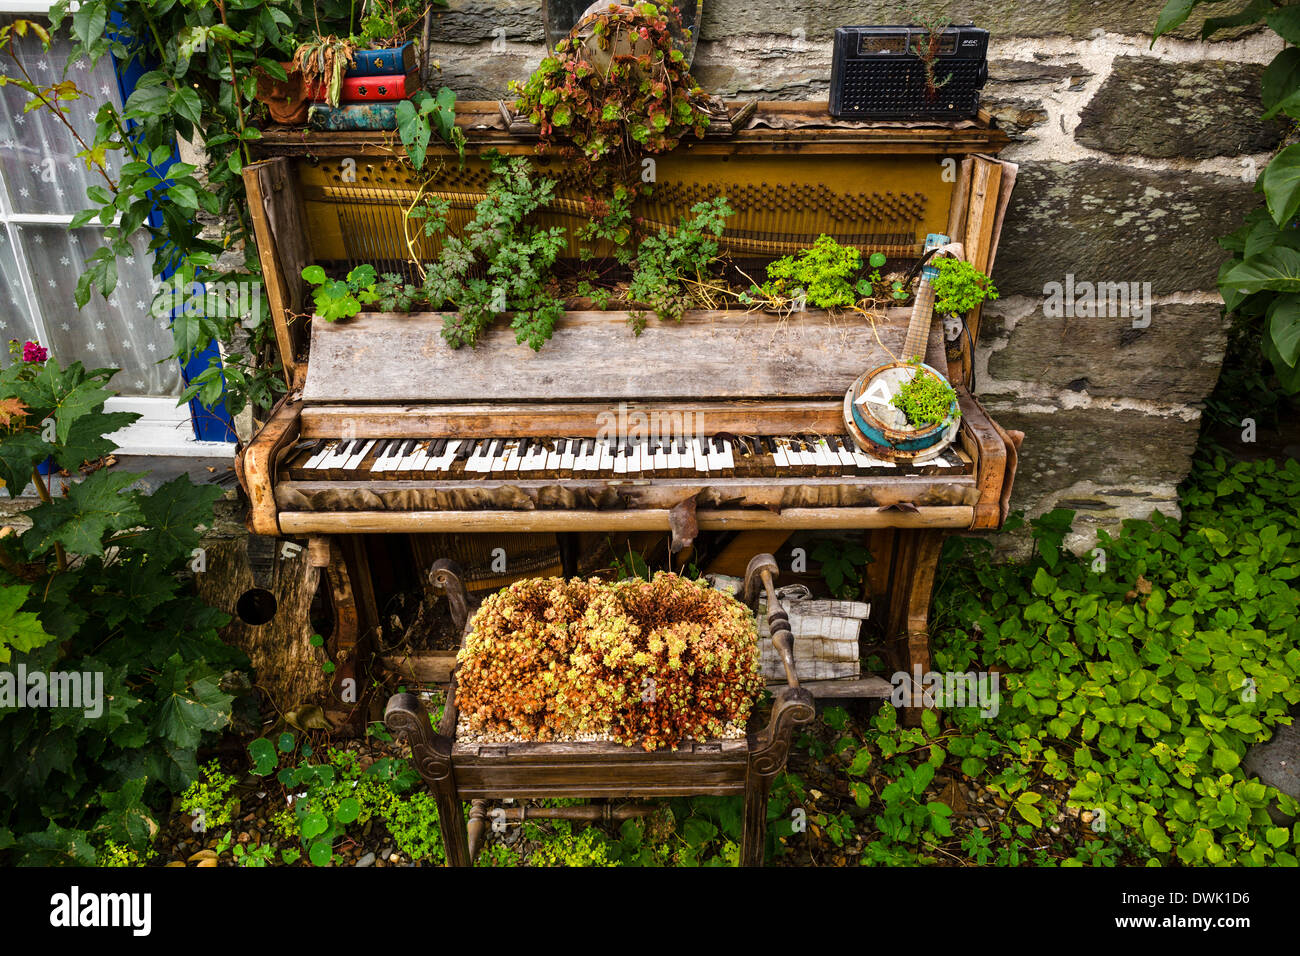 Old Piano And Piano Stool Used As Planters In The Garden